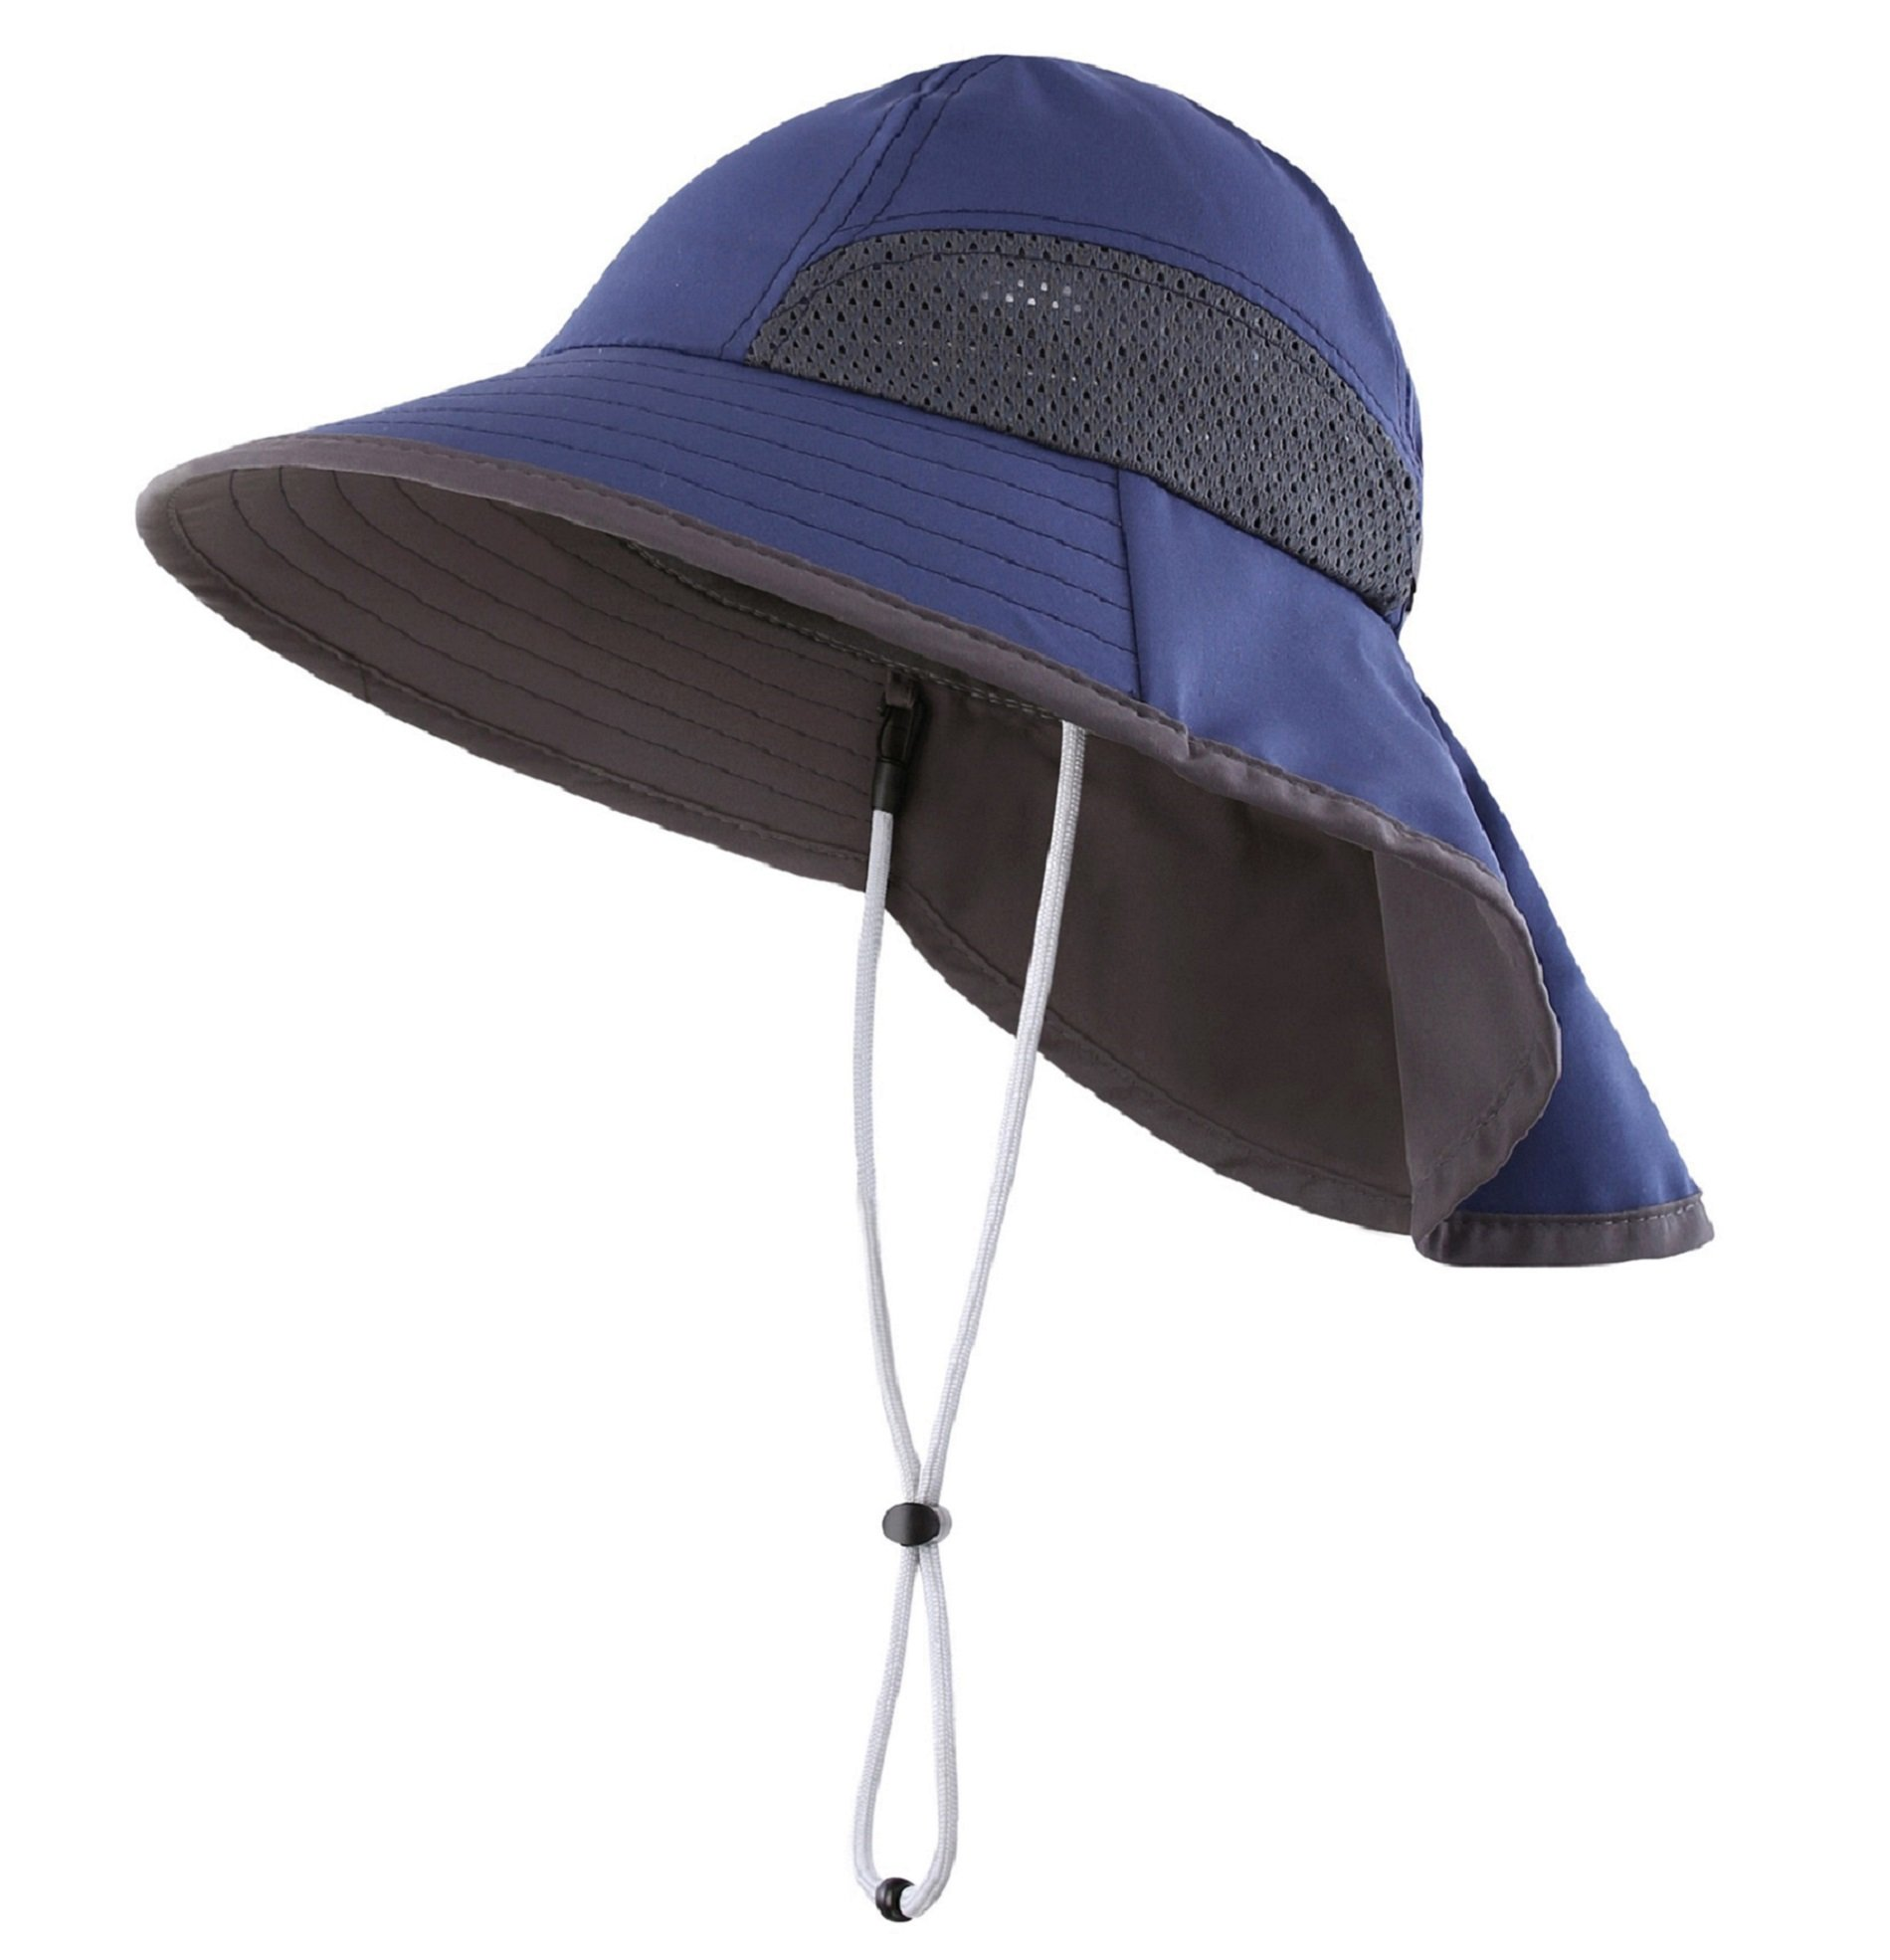 Connectyle Kids Summer Wide Brim UPF 50+ Mesh Sun Hats with Neck Flap UV Sun Protection Bucket Hat Navy by Connectyle